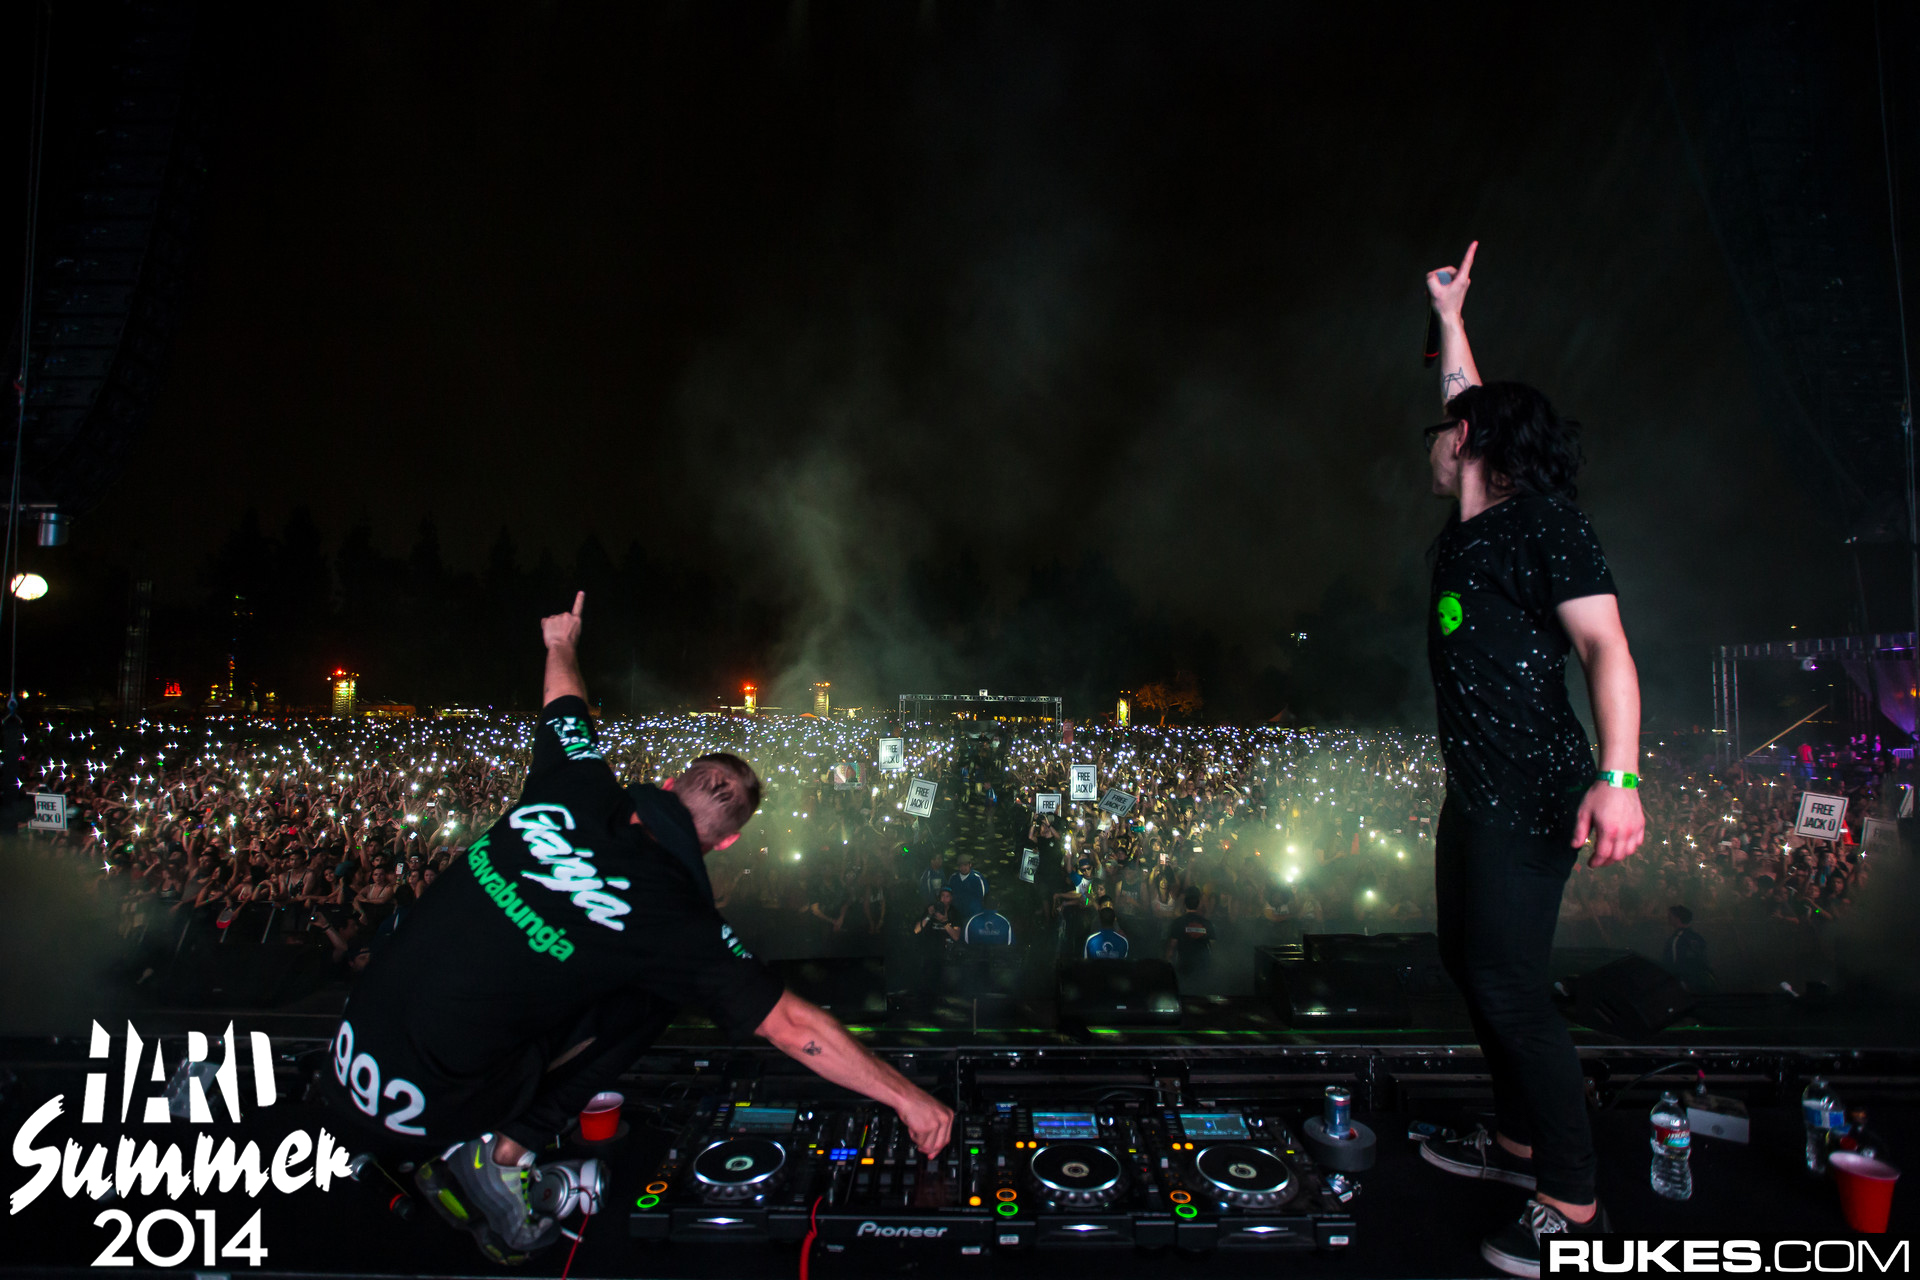 HARD Summer 2014 by Rukes